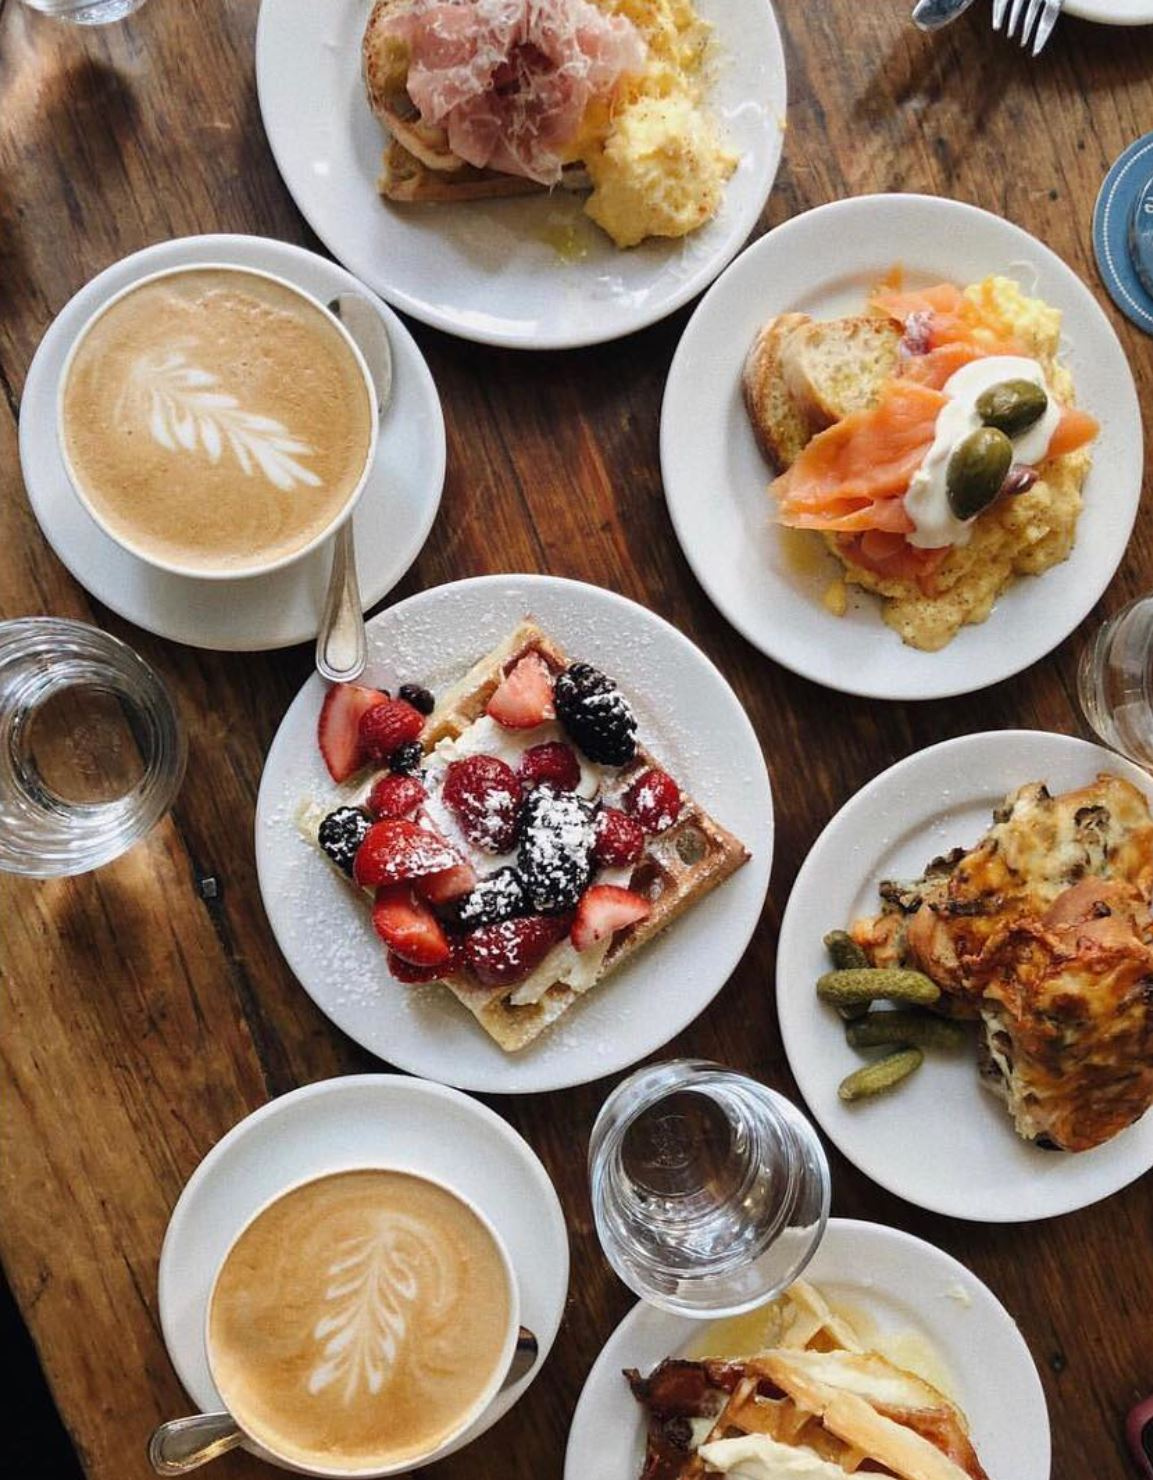 BUVETTE: NEW YORK CITY - BRUNCH